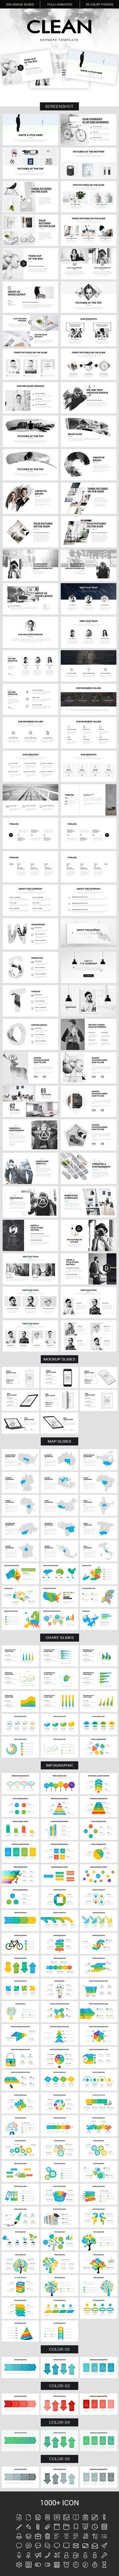 Clean Keynote Template #ecommerce #enterprise #entrepreneur • Click here to download ! http://graphicriver.net/item/clean-keynote-template/15921009?s_rank=116&ref=pxcr: